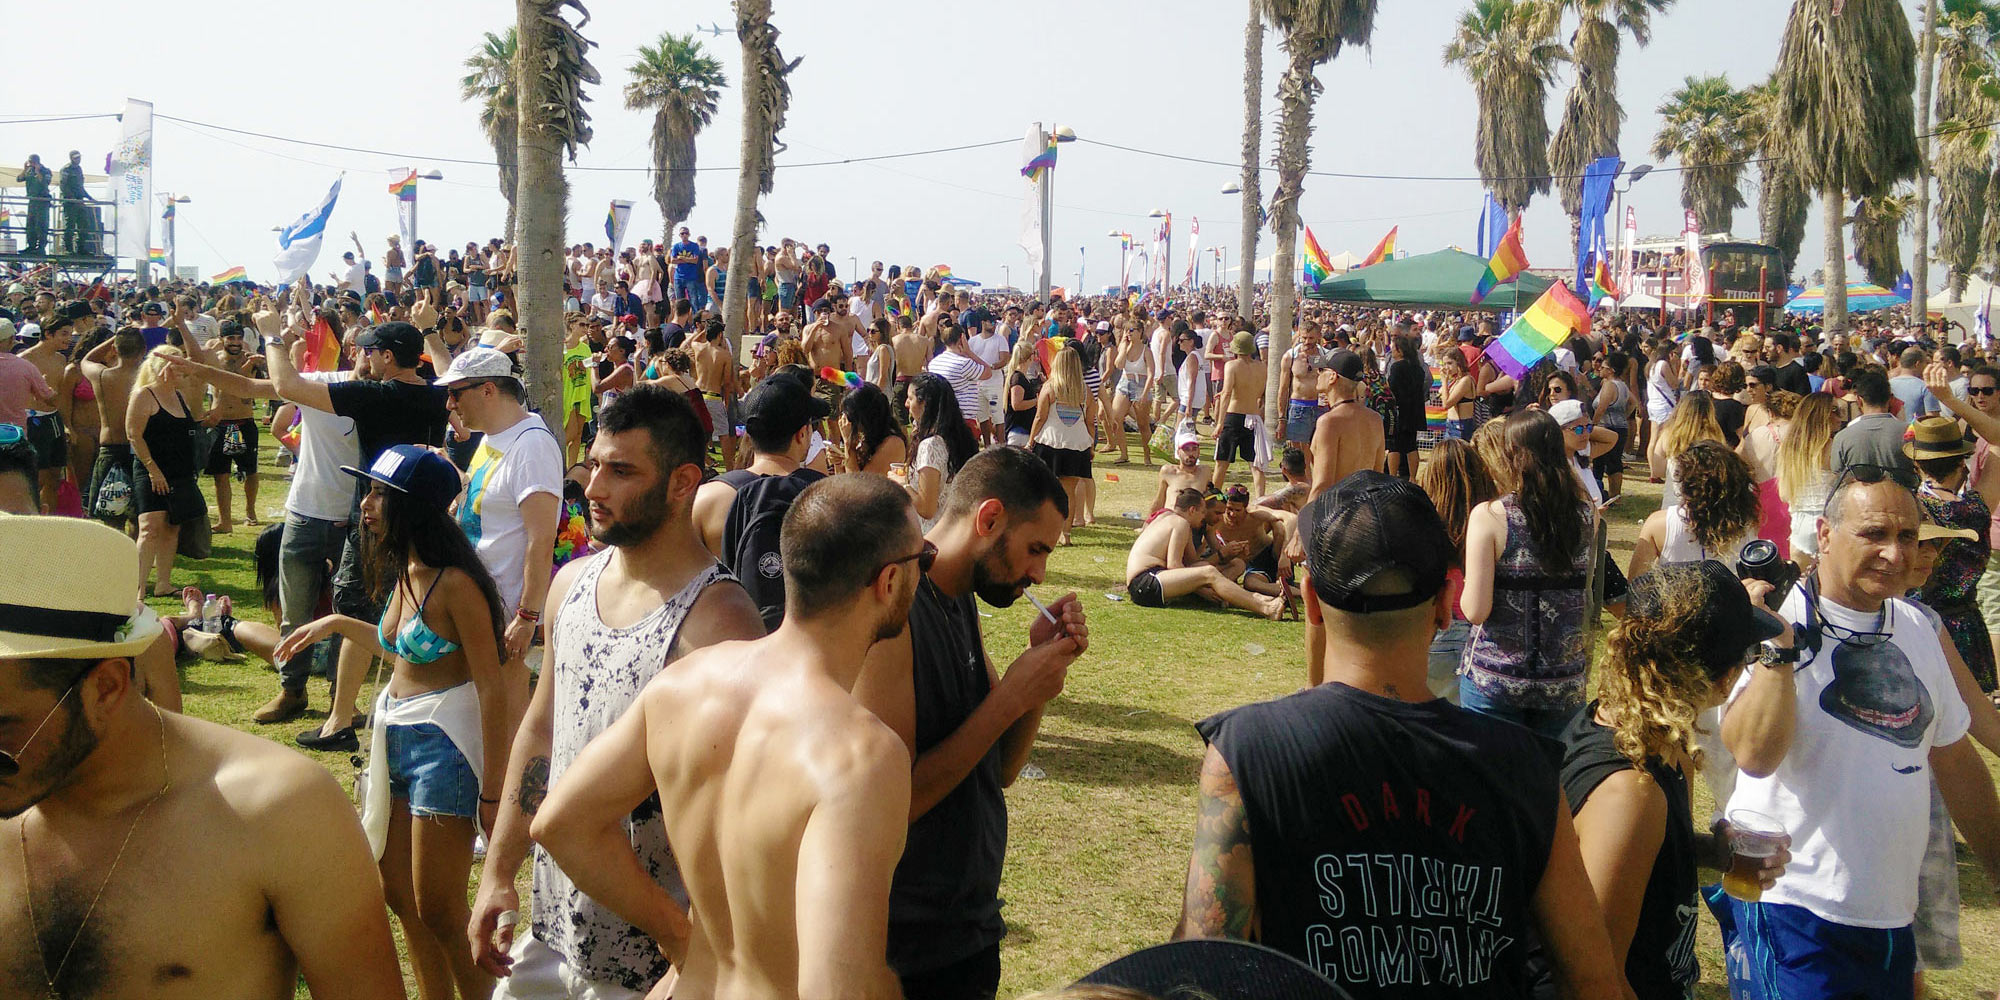 thousands celebrate Tel Aviv Pride at Charles Clore Park, some with bare chest because of the heat